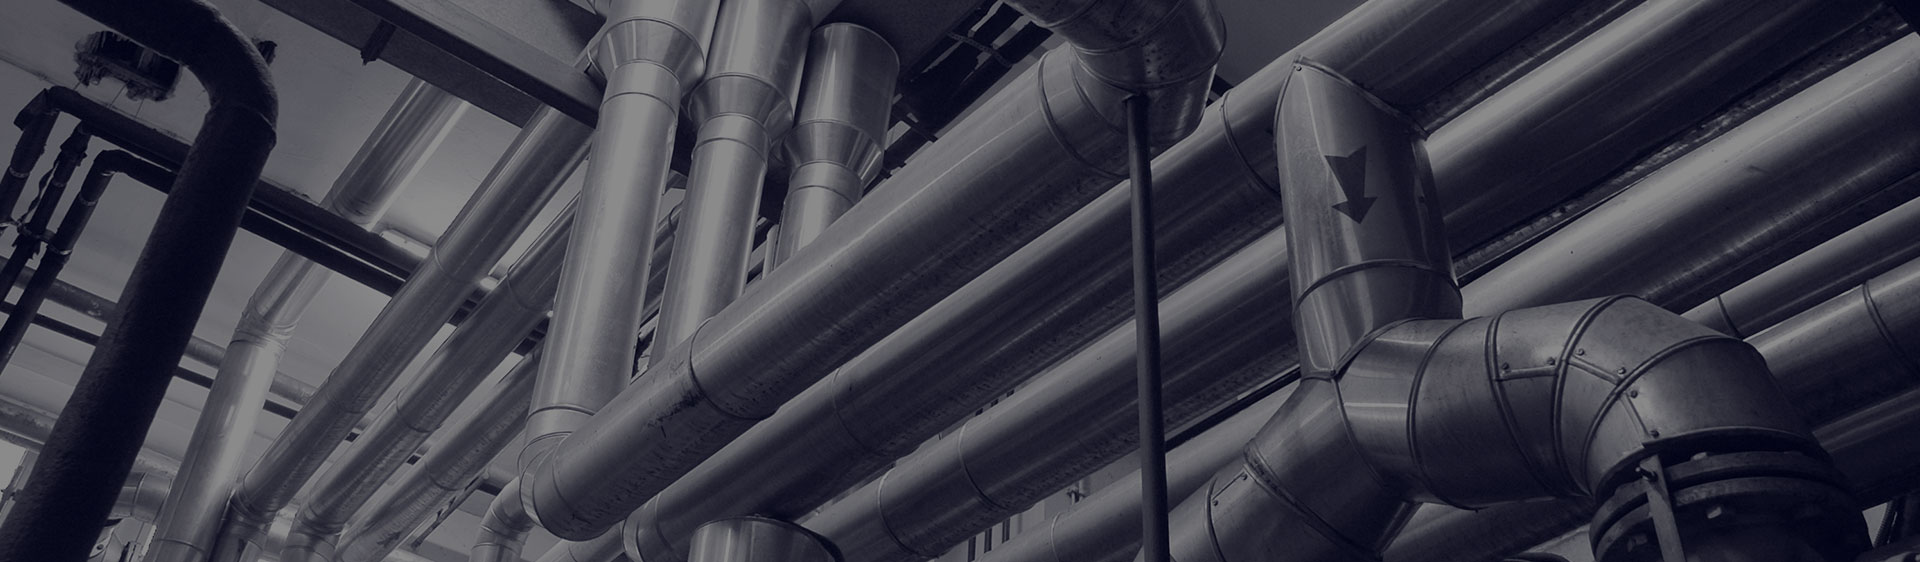 Fort Lauderdale Mechanical Insulation, Insulation Company and Insulation Contractor